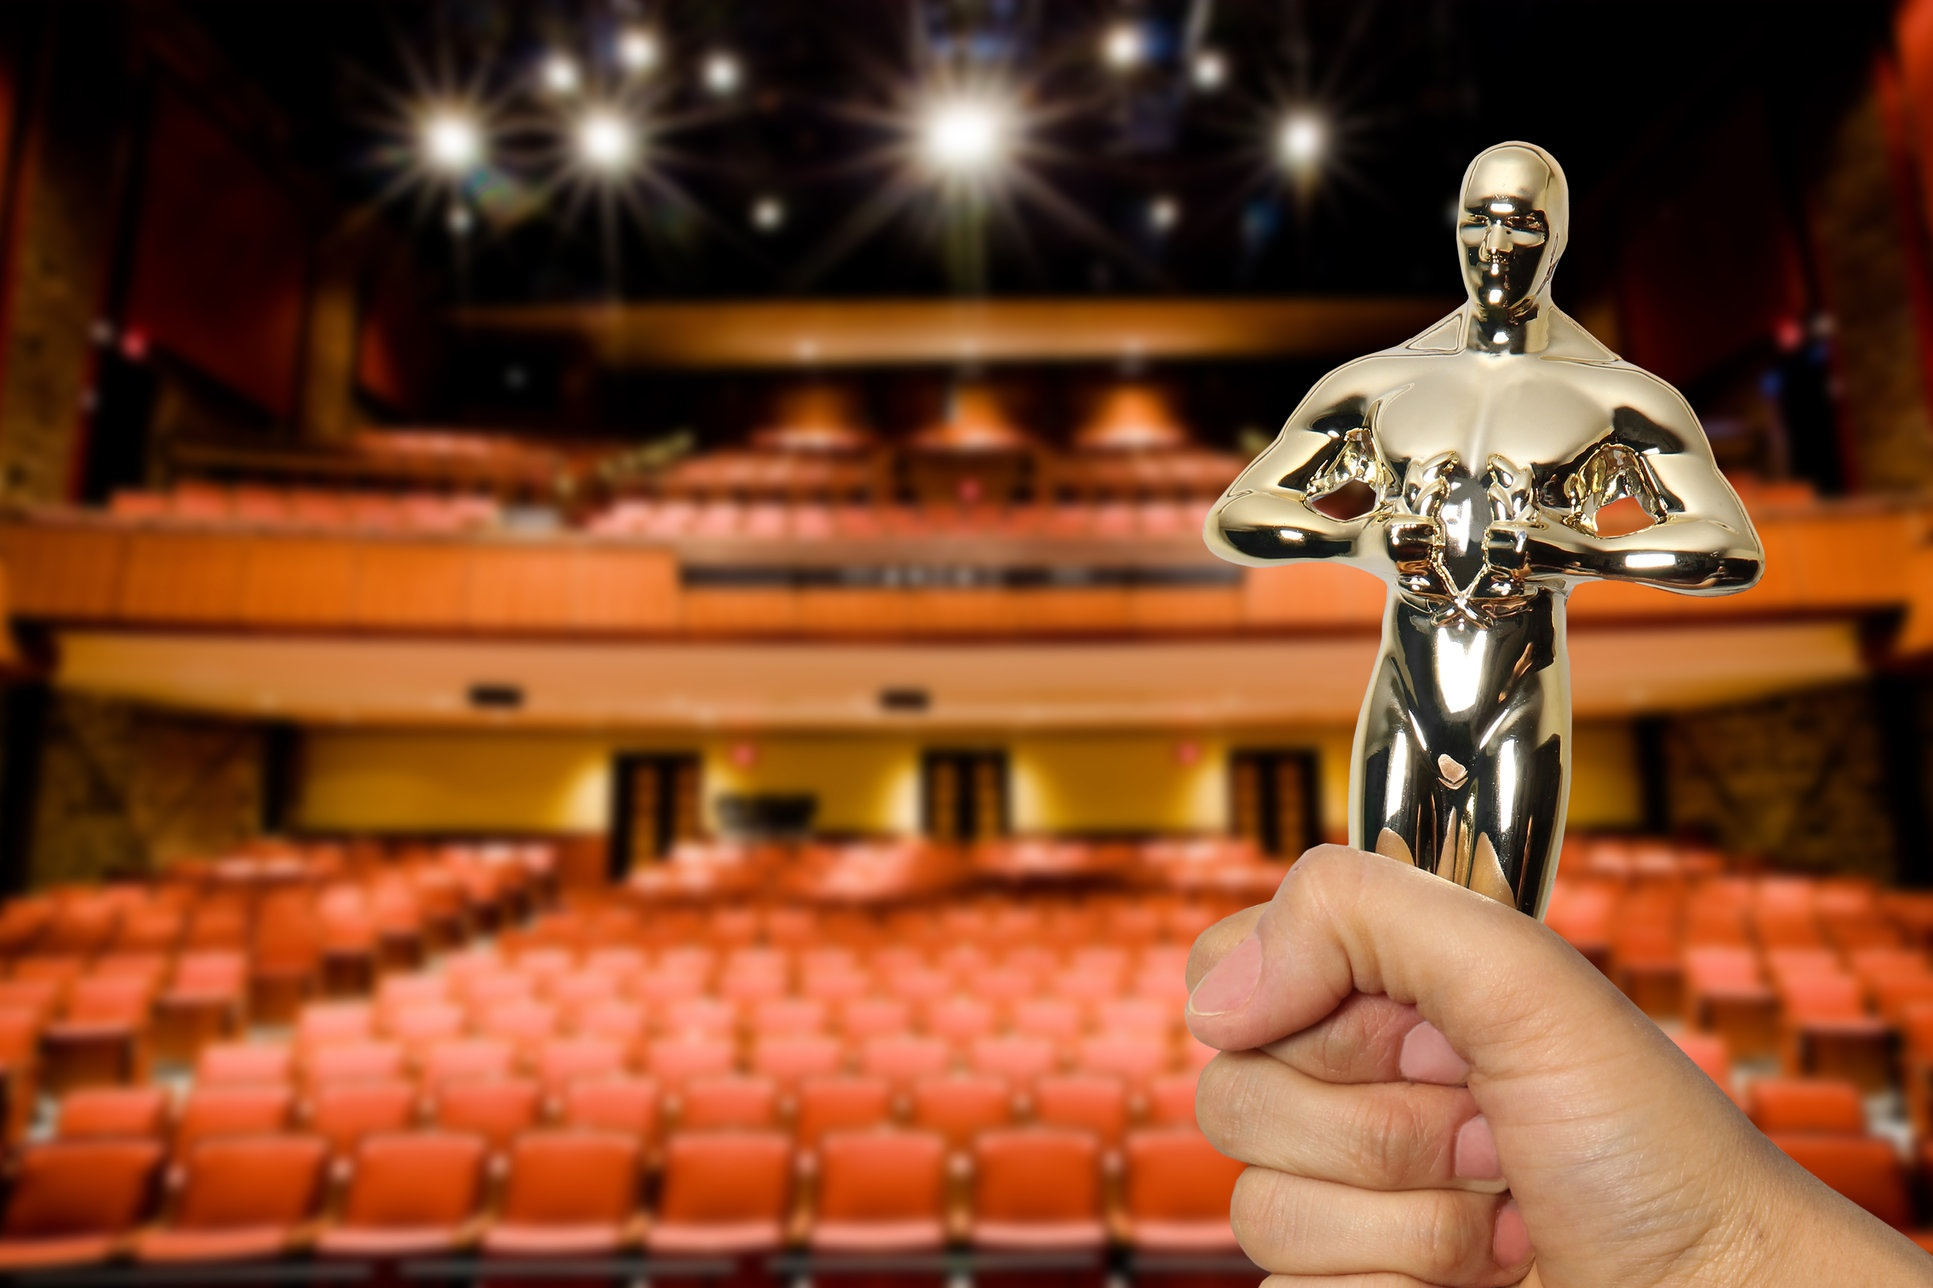 Is Your Website Oscar Worthy or a B-Movie Dud? 6 Things Every Website Should Include to be Great